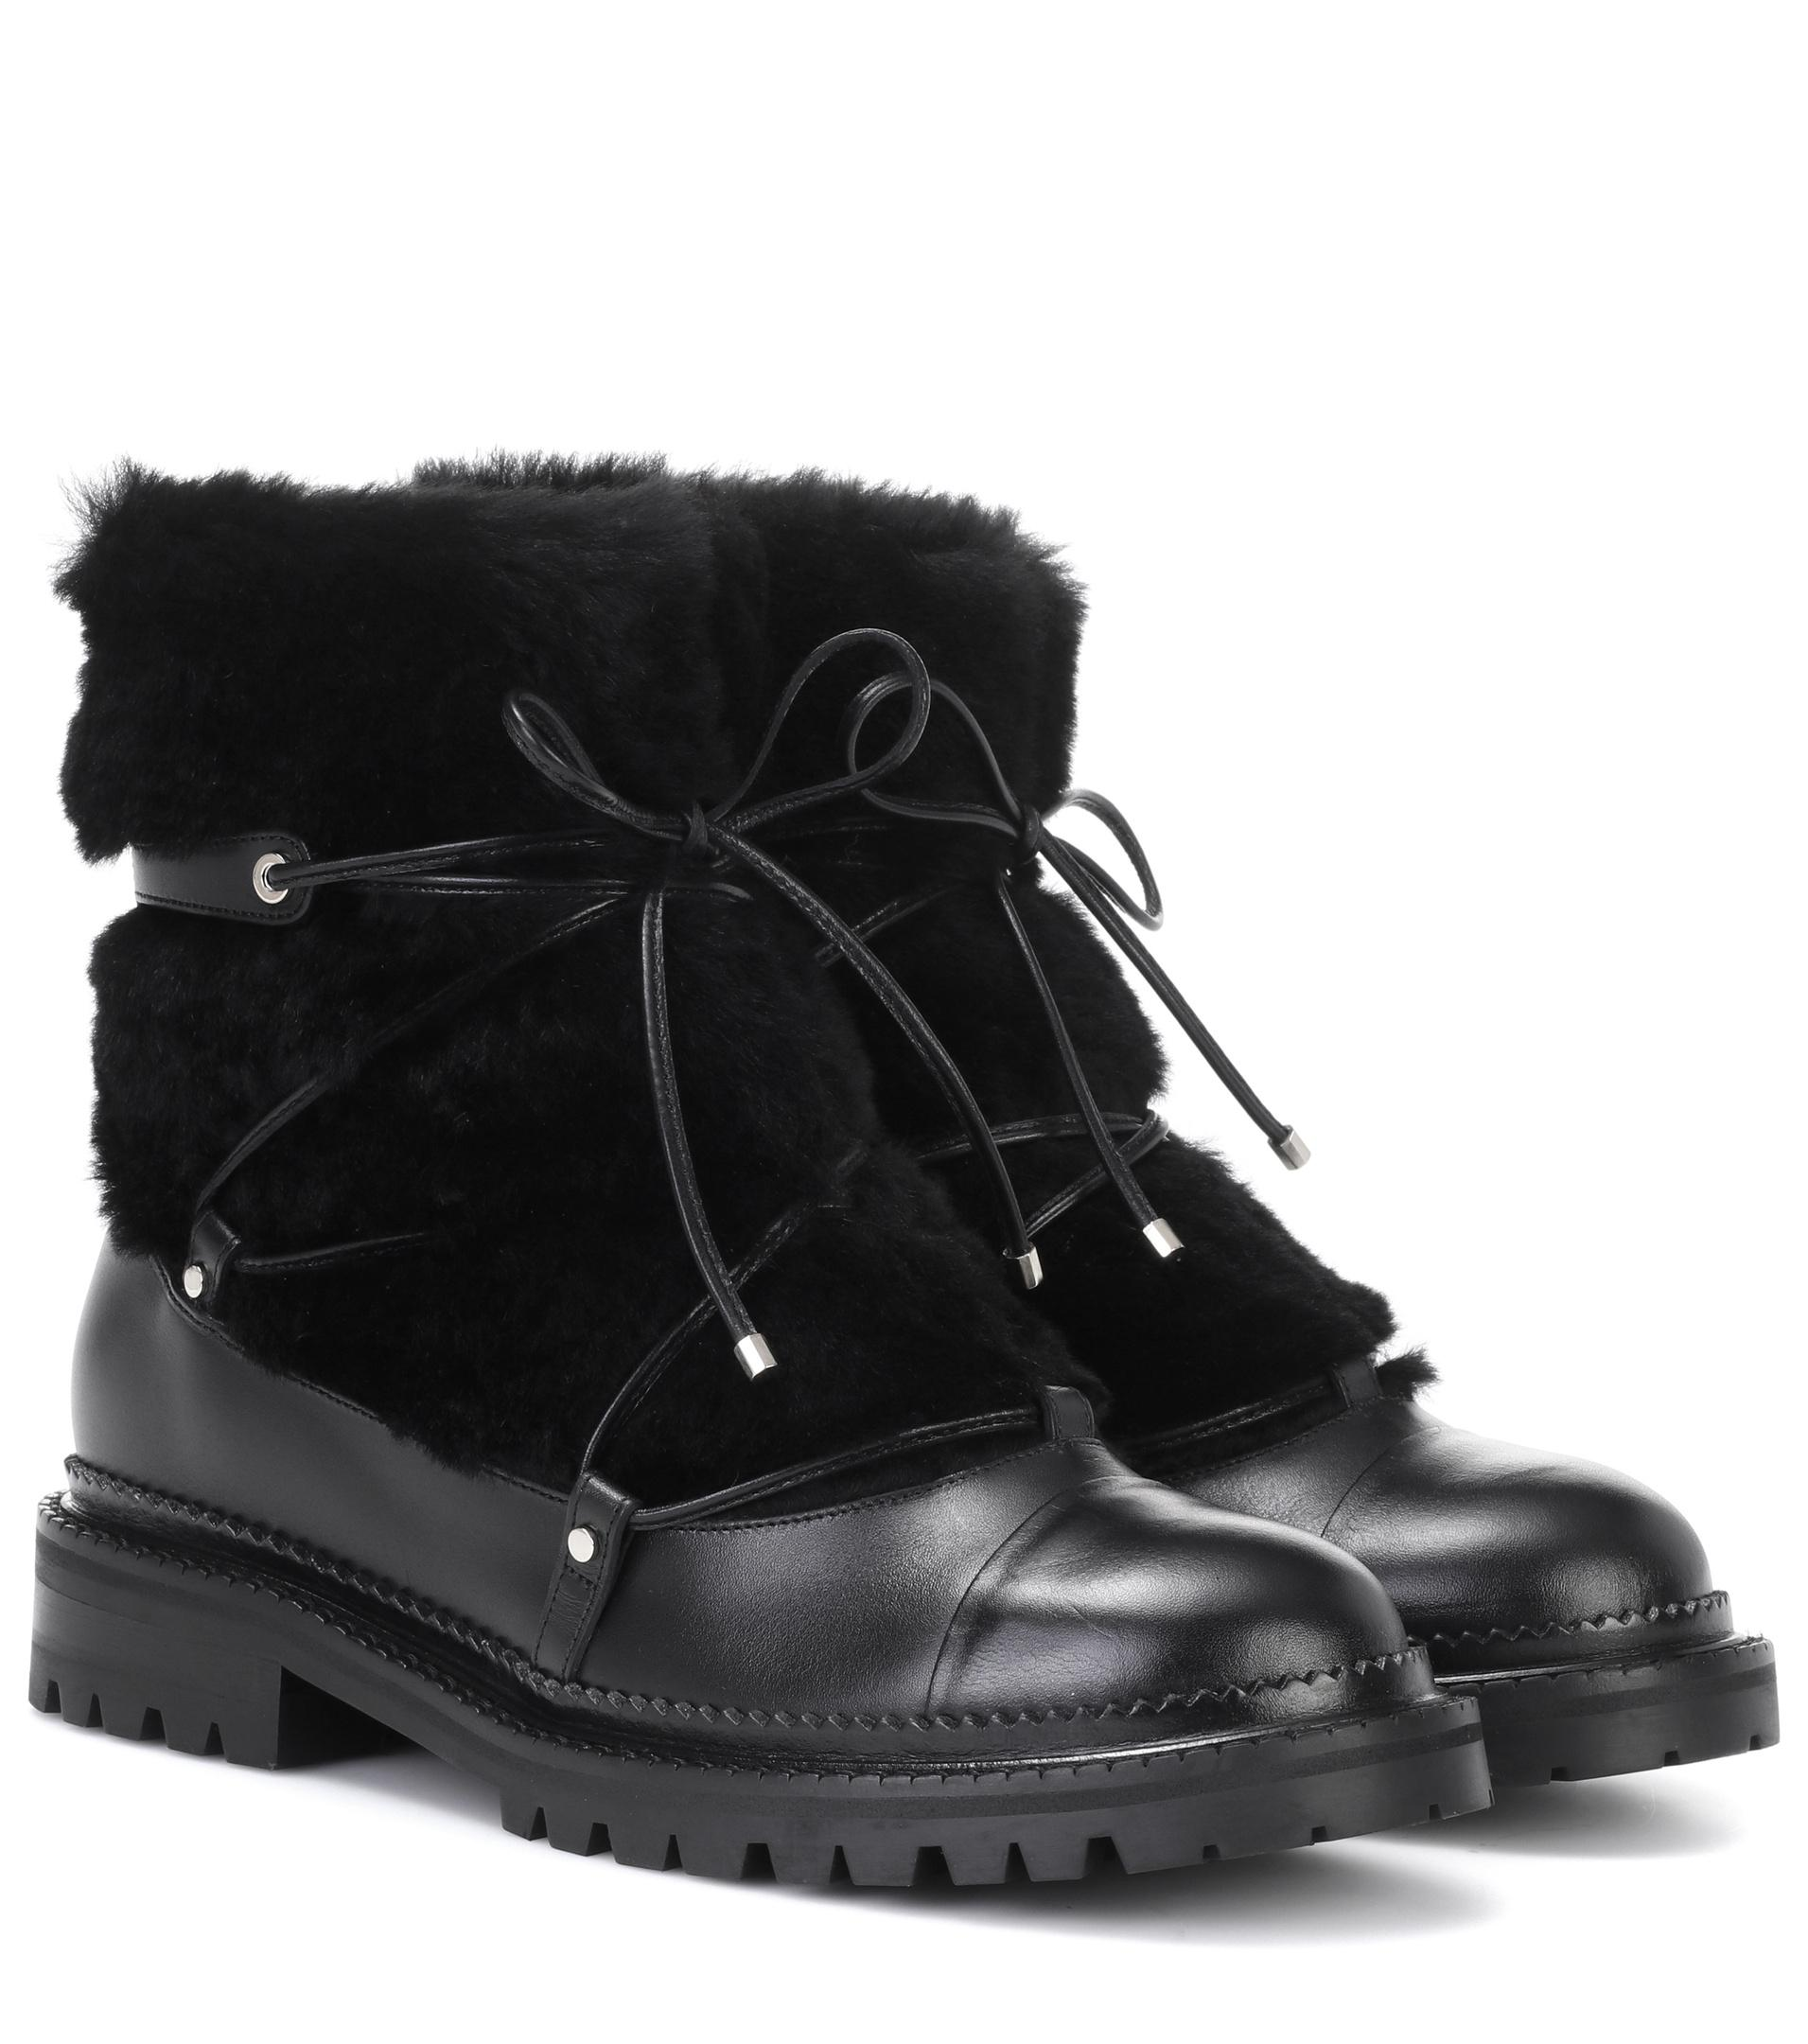 Sophia Webster Black Shearling Darcie Boots